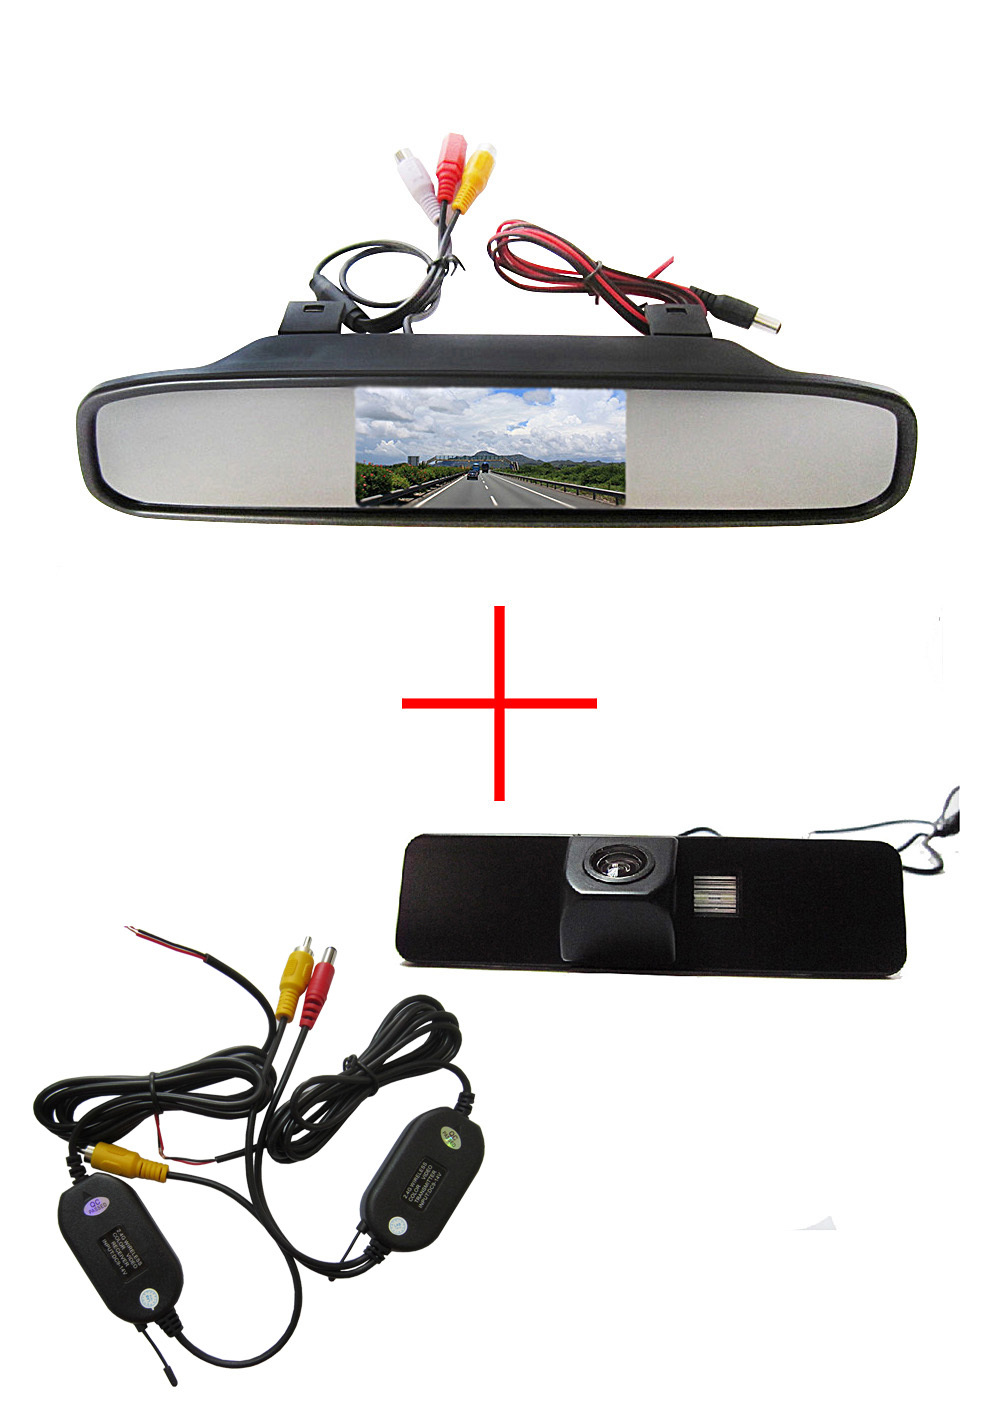 Wireless Color CCD Chip Car Rear View Camera for Subaru Legacy Liberty + 4.3 Inch rearview Mirror Monitor wireless color ccd chip car rear view camera for kia sorento sportage 4 3 inch foldable lcd tft monitor